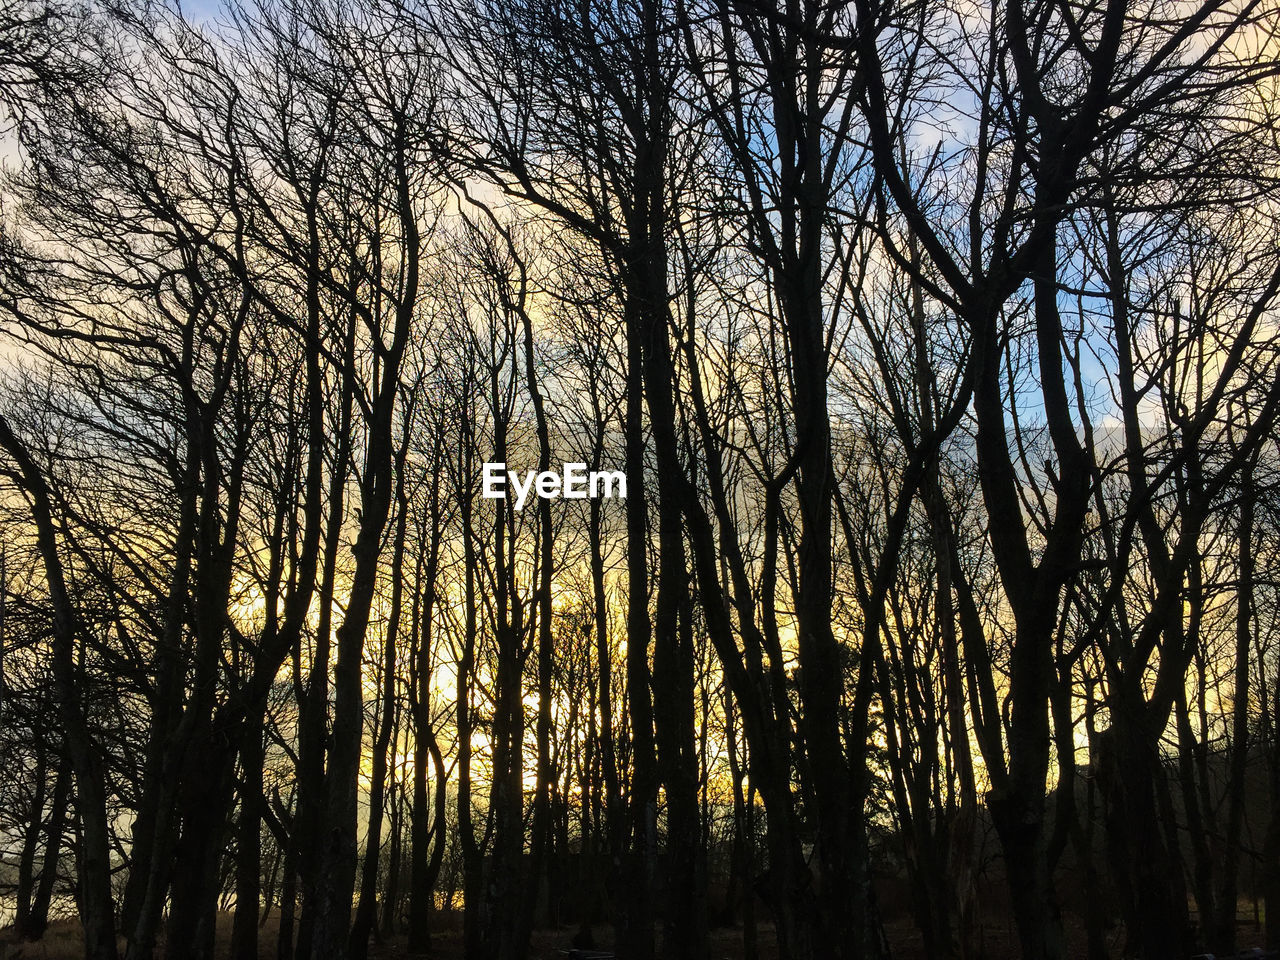 tree, bare tree, forest, tranquility, nature, tranquil scene, low angle view, outdoors, silhouette, beauty in nature, tree trunk, no people, branch, scenics, day, sky